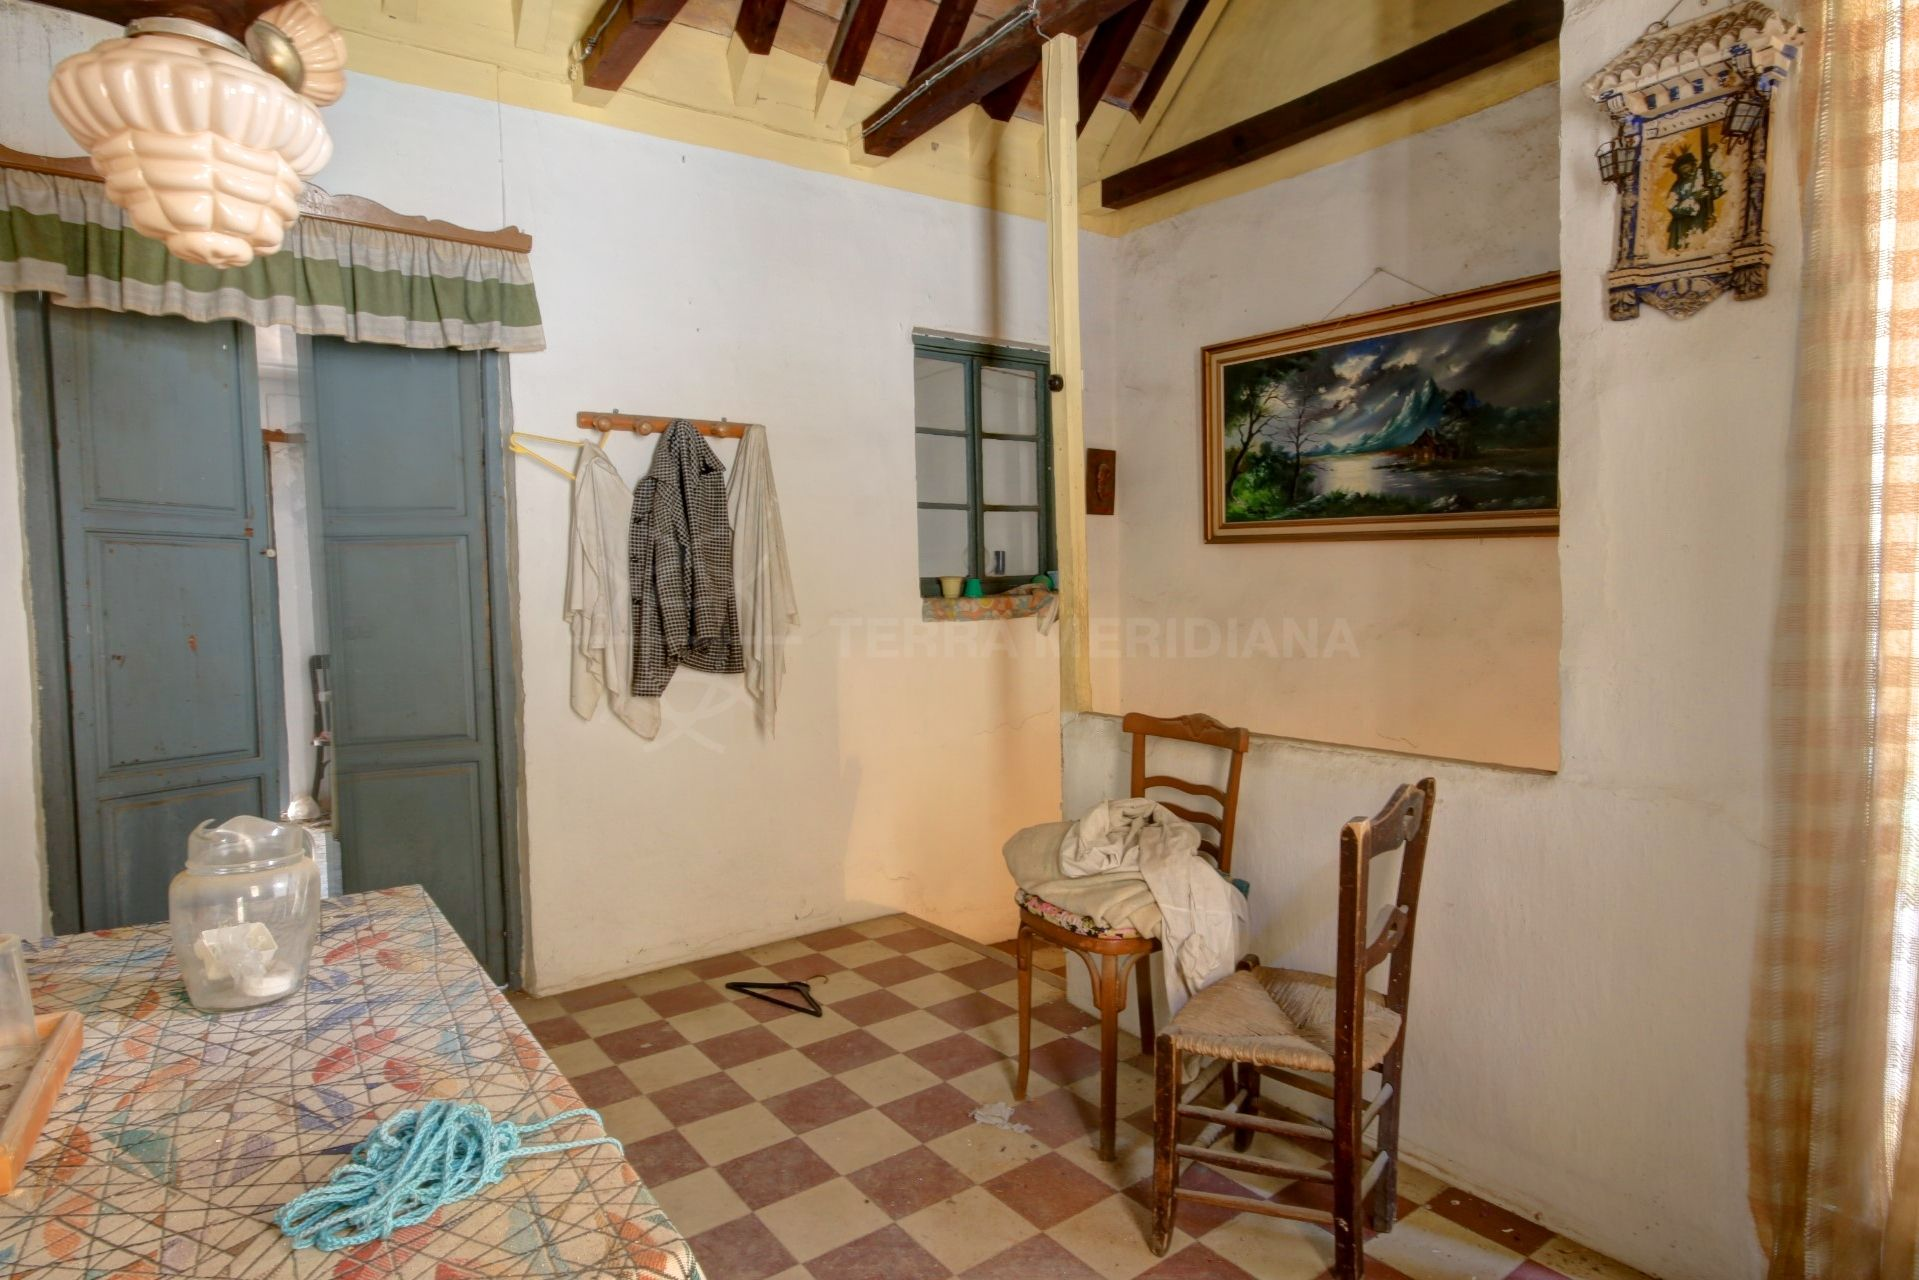 Town house for sale in the heart of Estepona old town centre